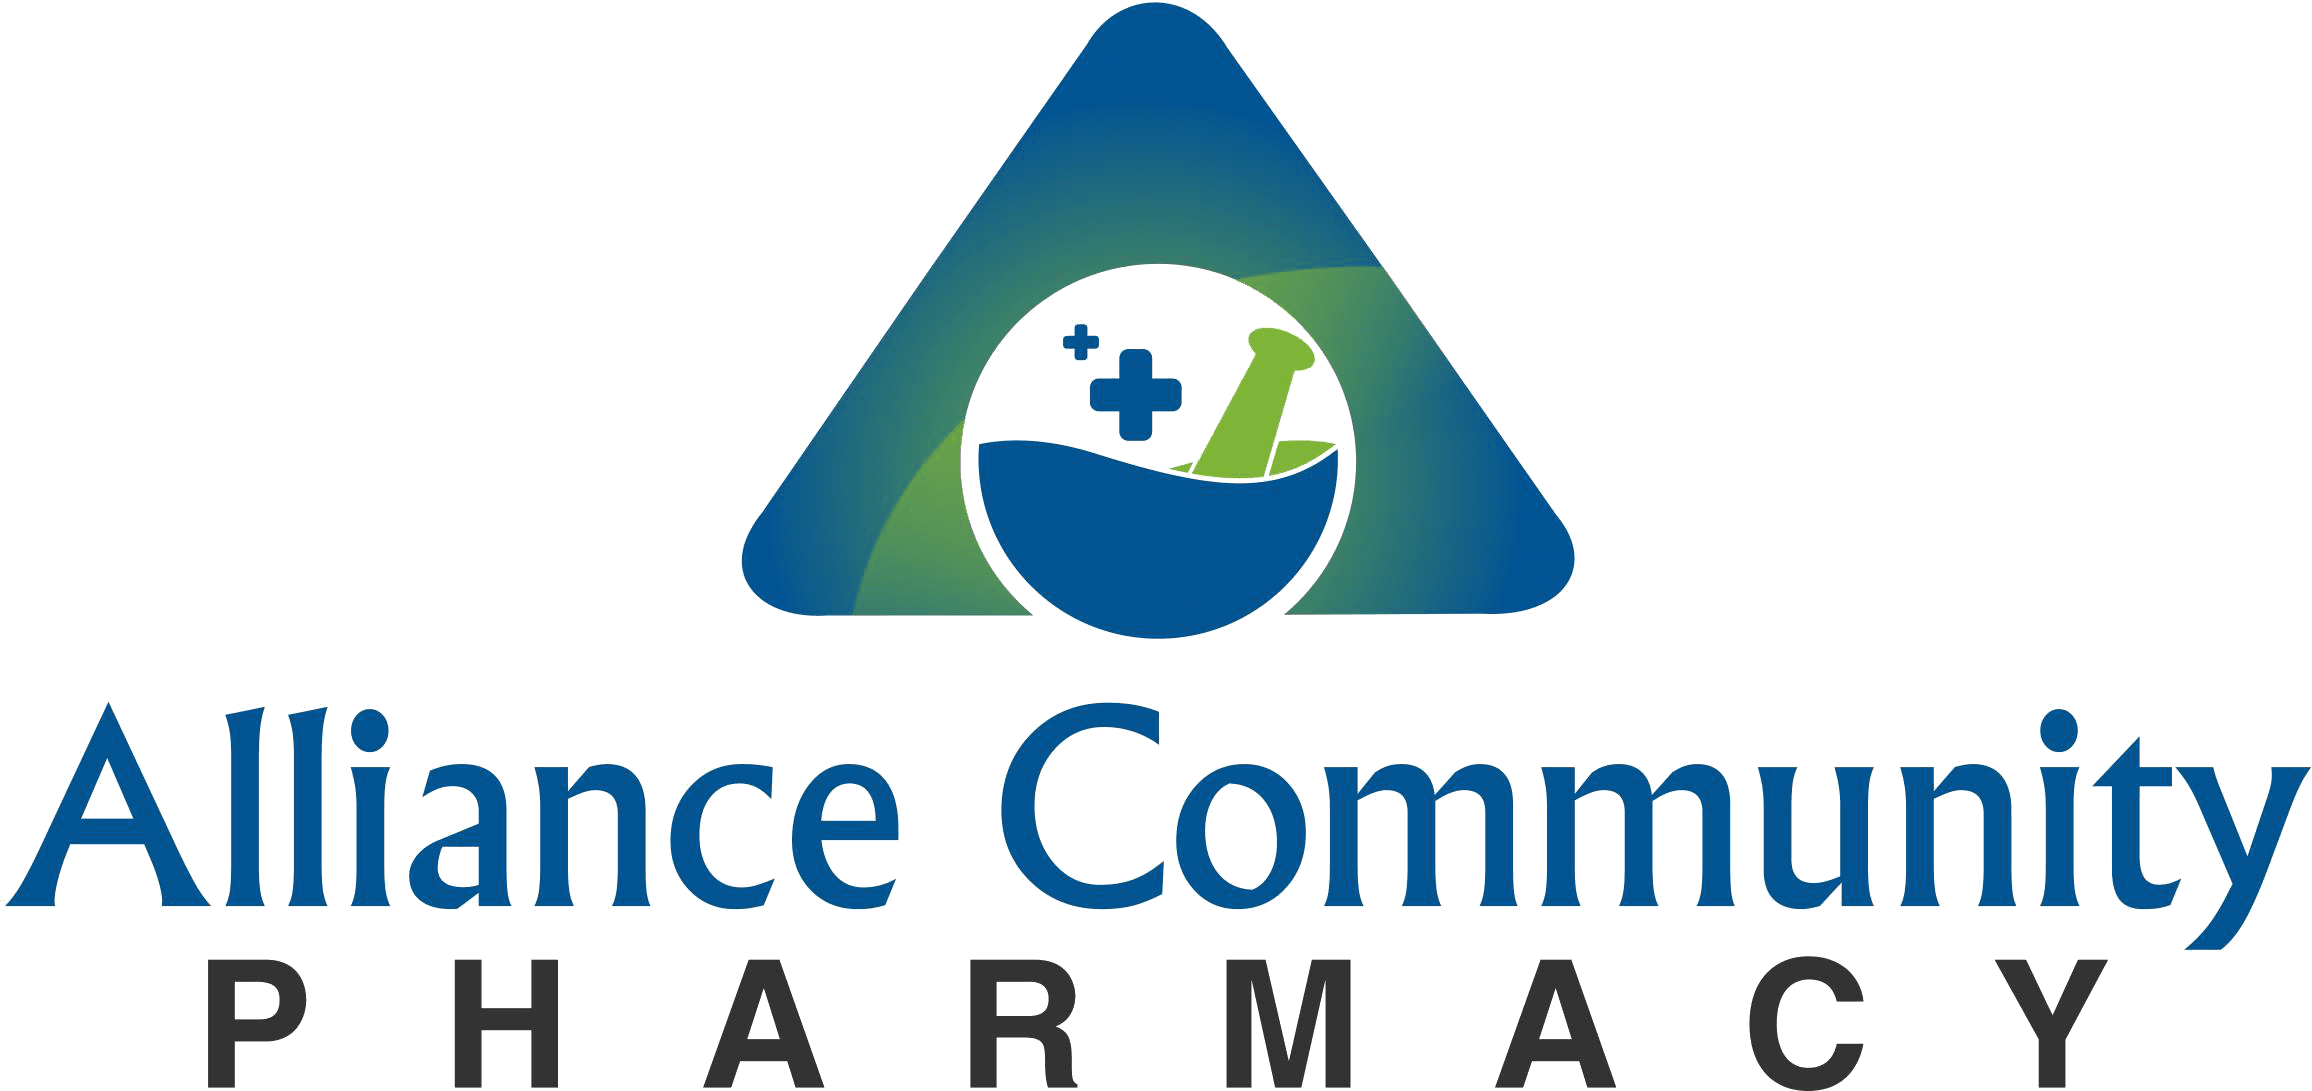 Alliance Community Pharmacy - Your community pharmacy!